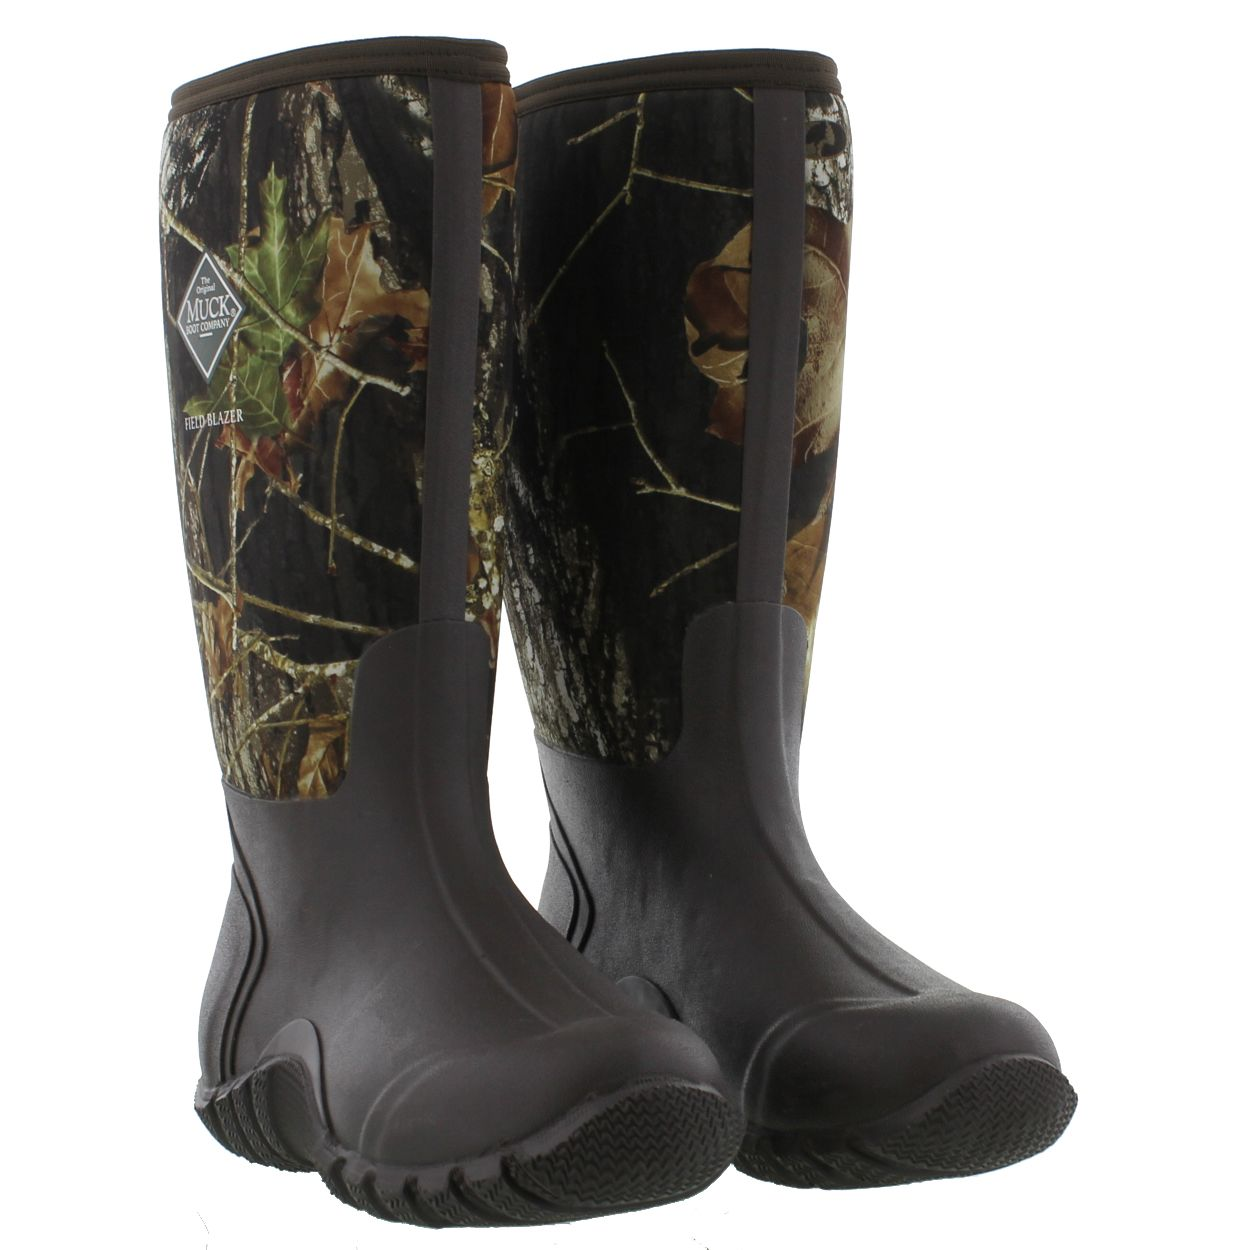 Fieldblazer Muck Boots Uk - All About Boots